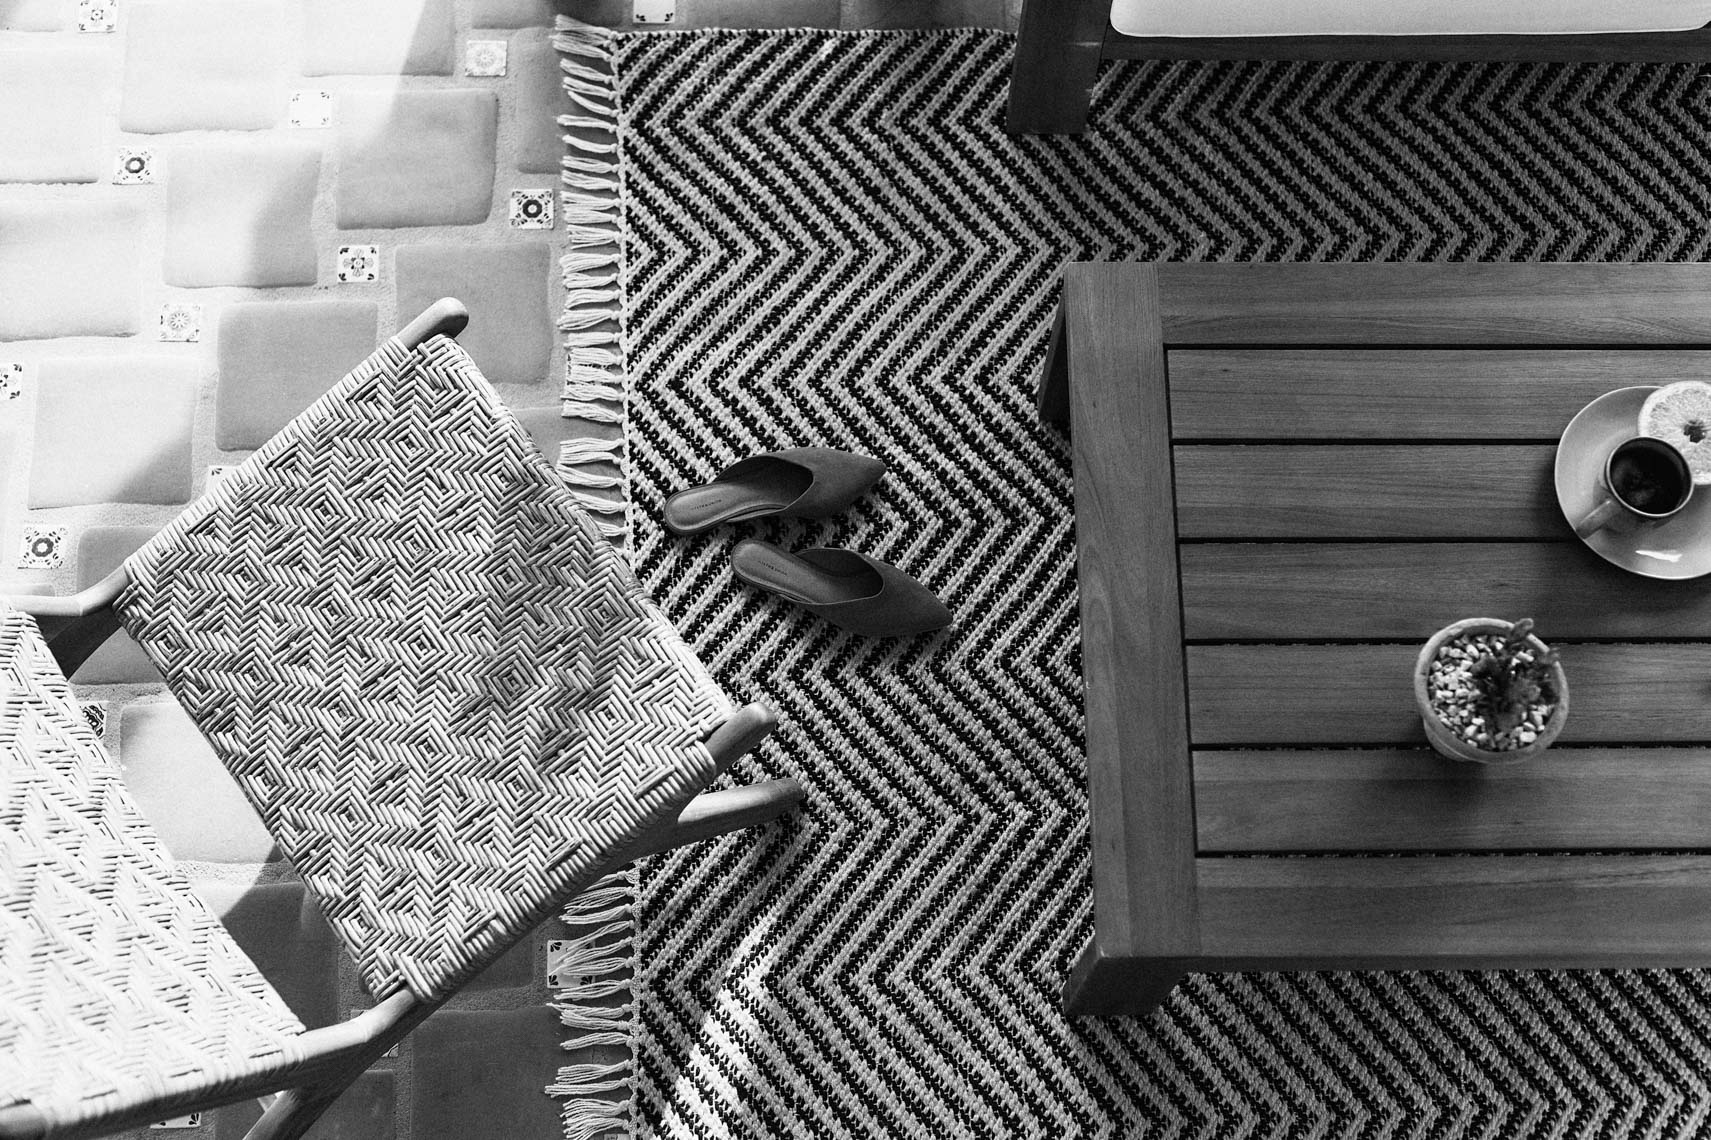 Straight down view of chair and table with shoes on pattern rug